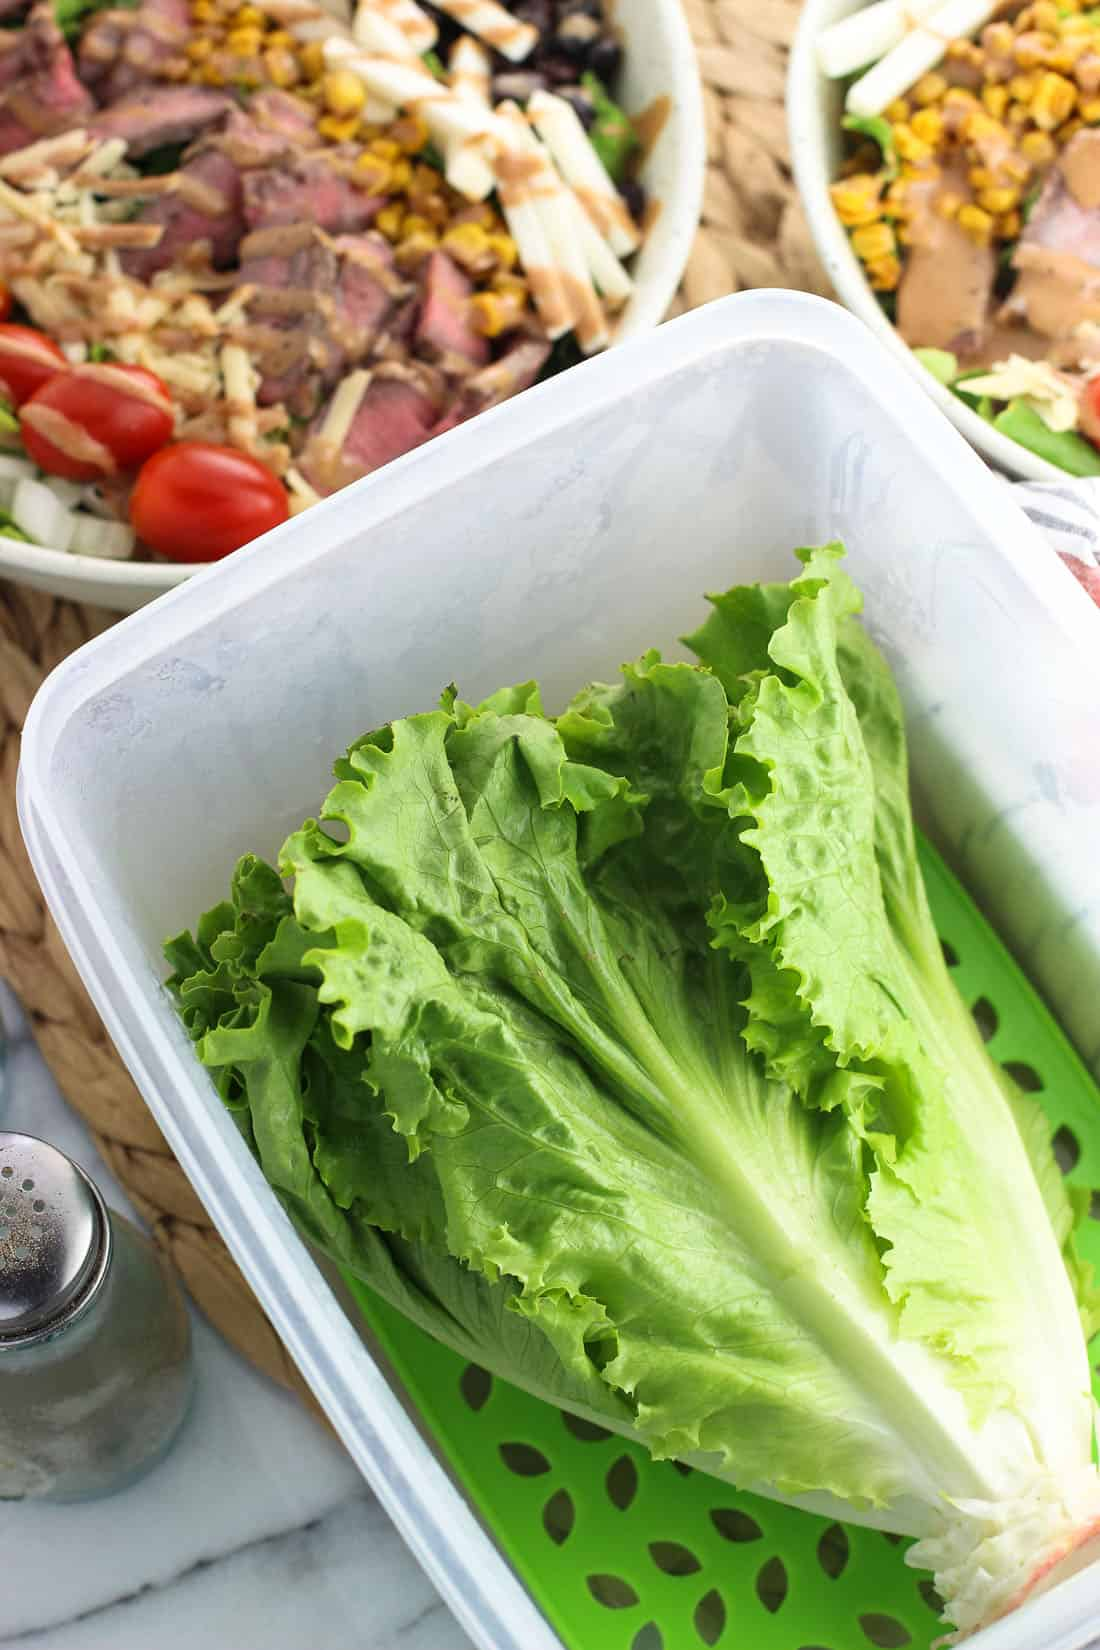 A head of lettuce in a plastic produce saver container in front of assembled salads.